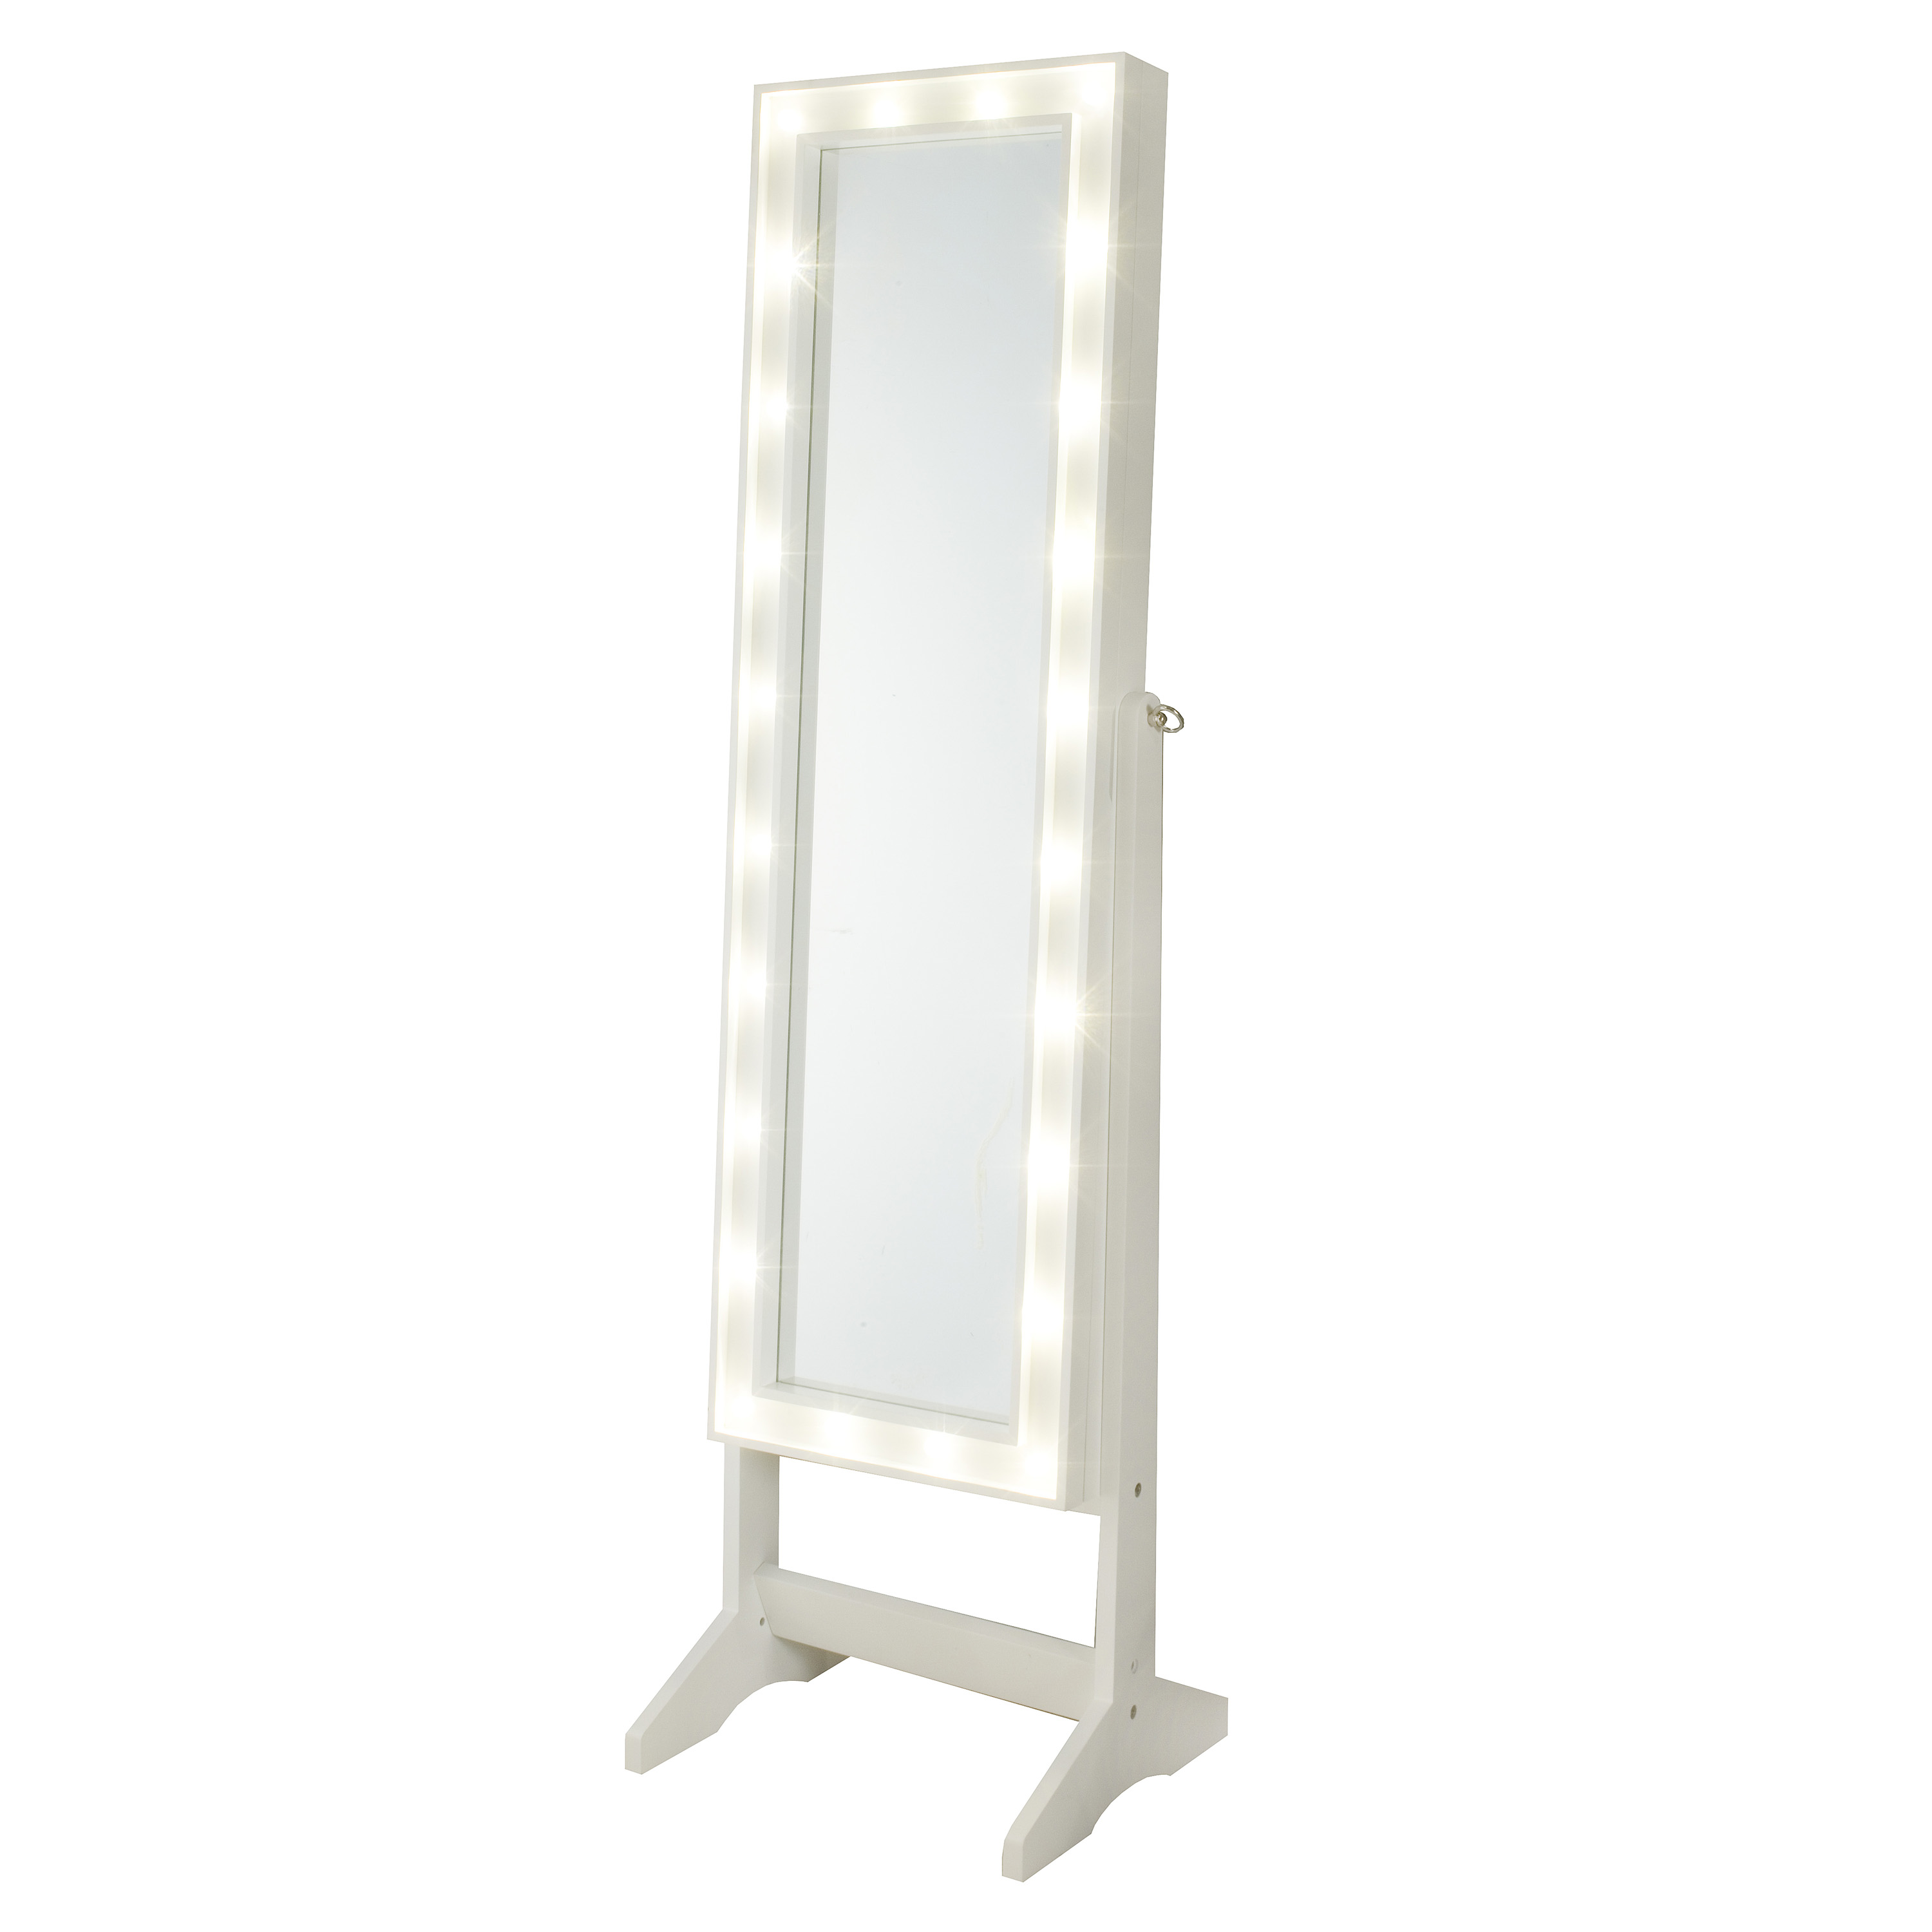 InnerSpace Cheval Mirror Jewelry Armoire with LED Lights by InnerSpace Luxury Products